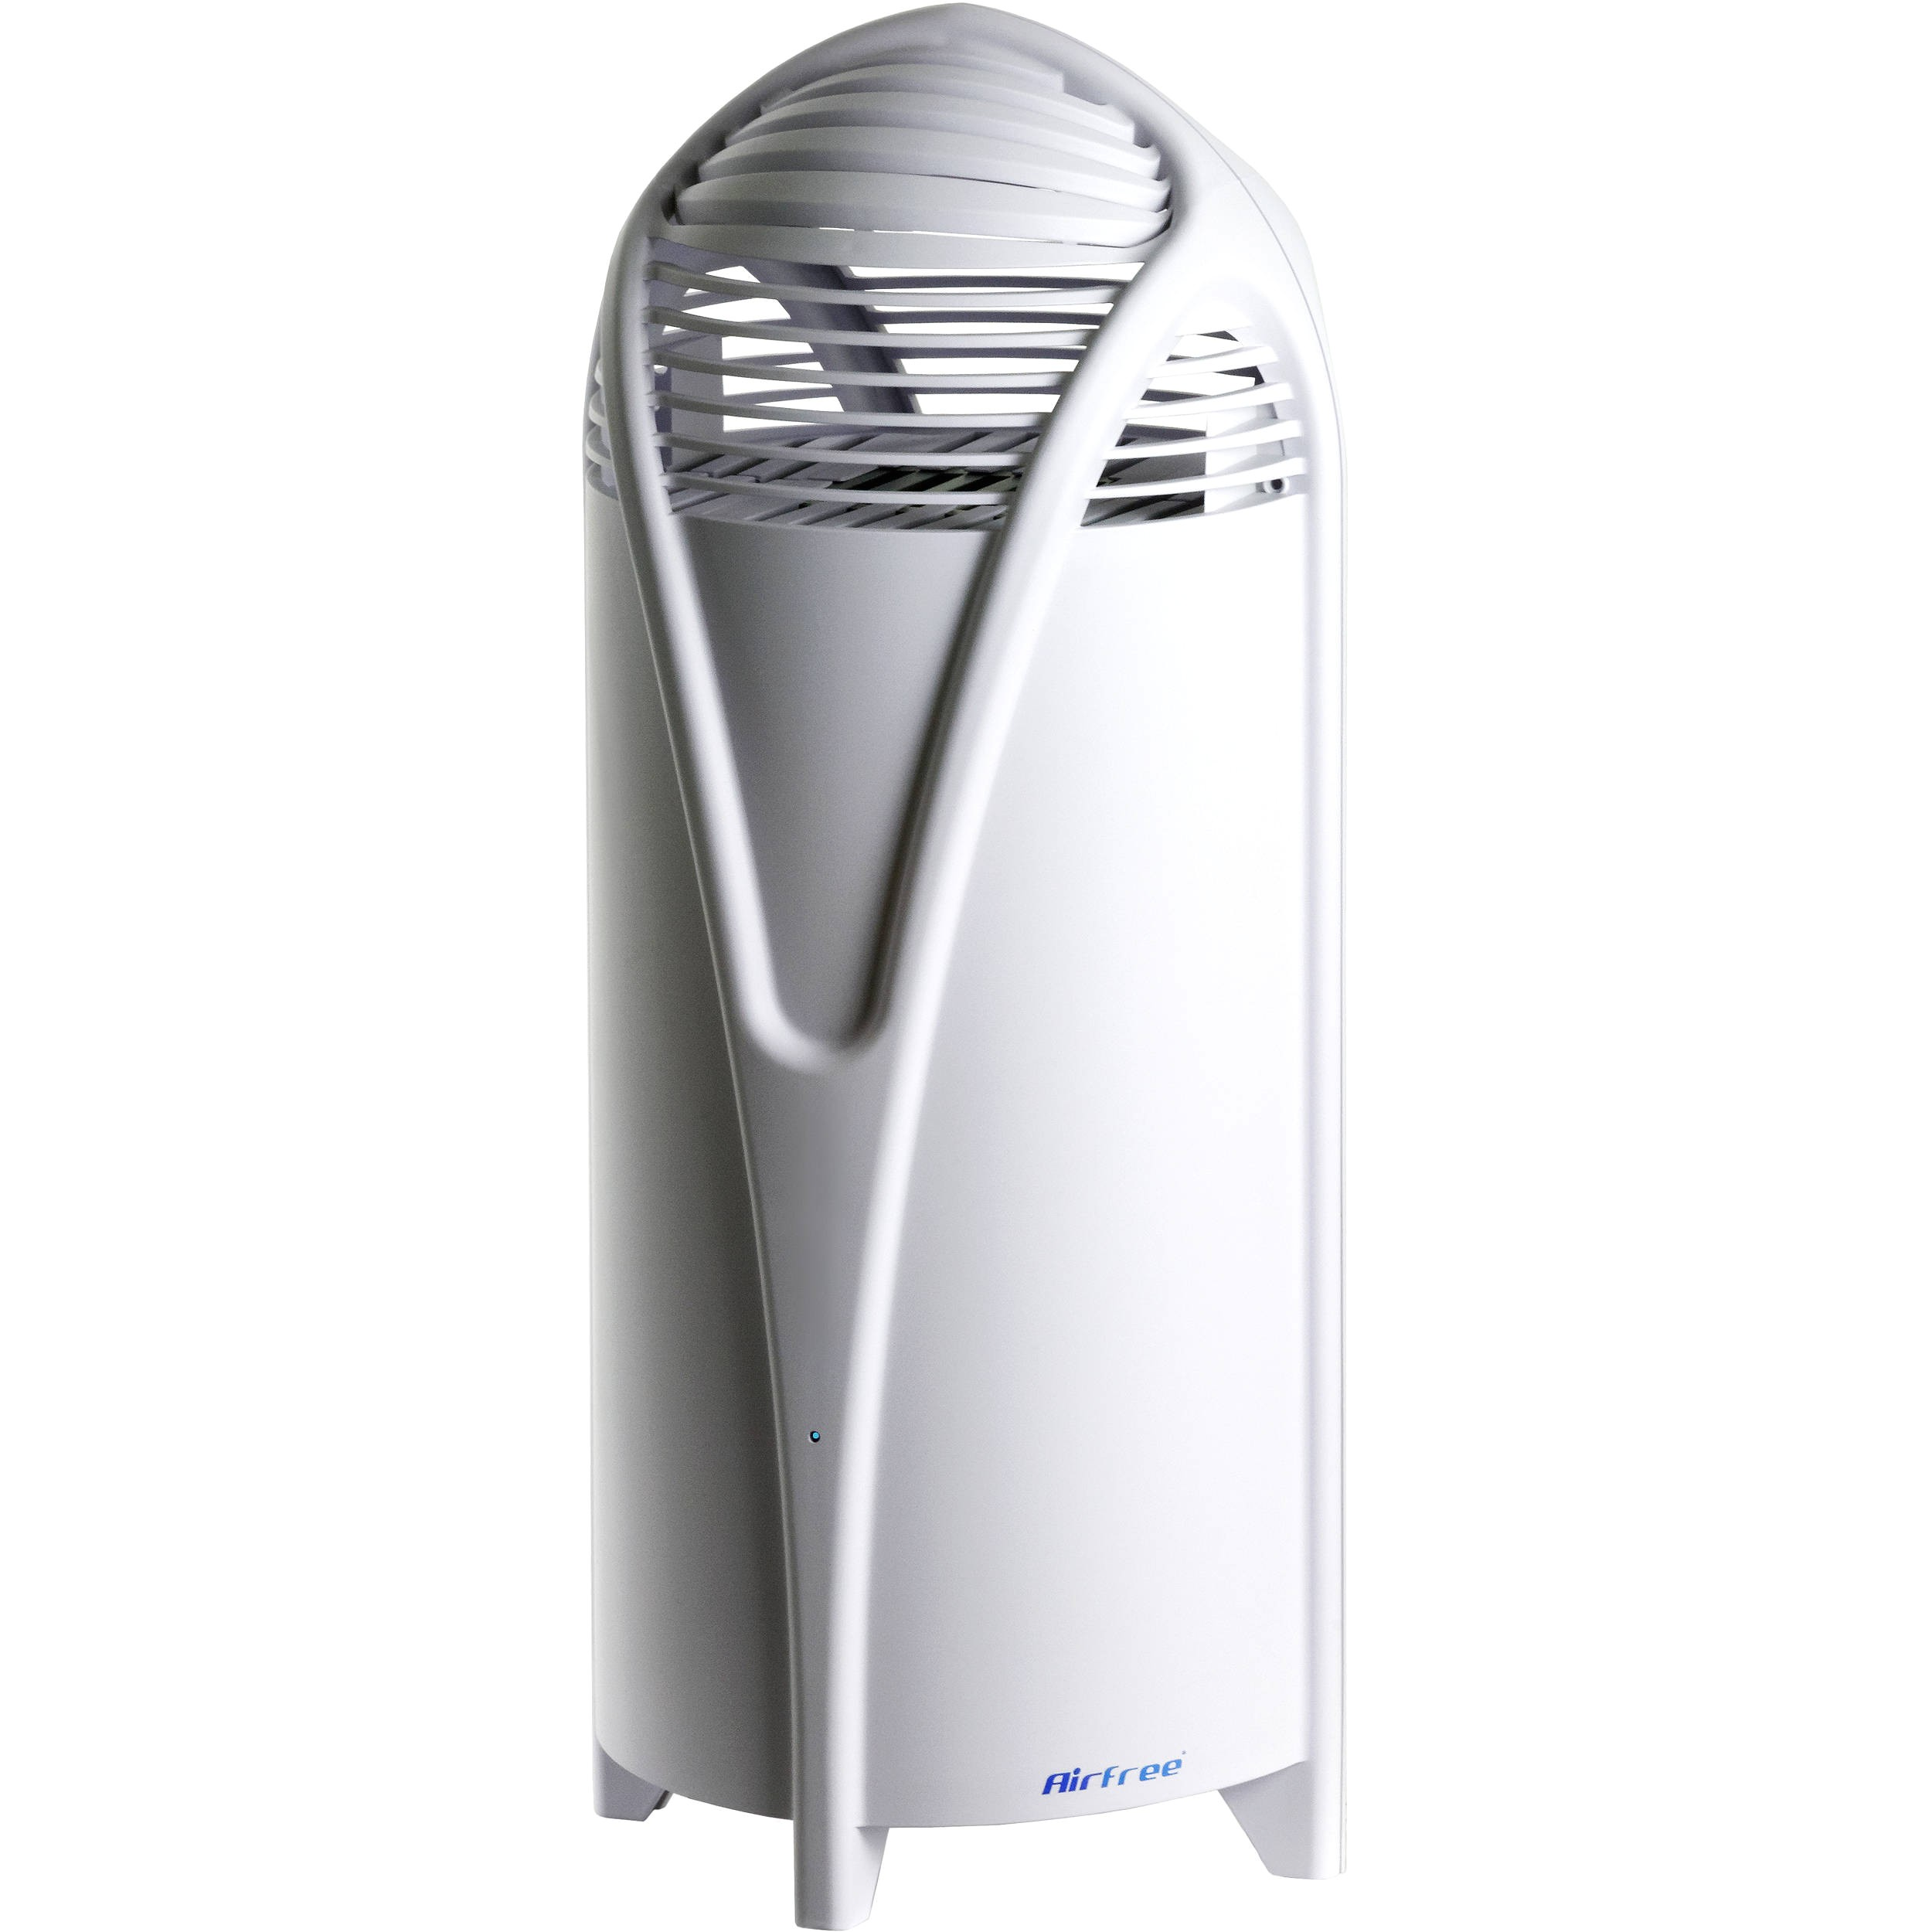 airfree 851866400035 t800 filterless air purifier